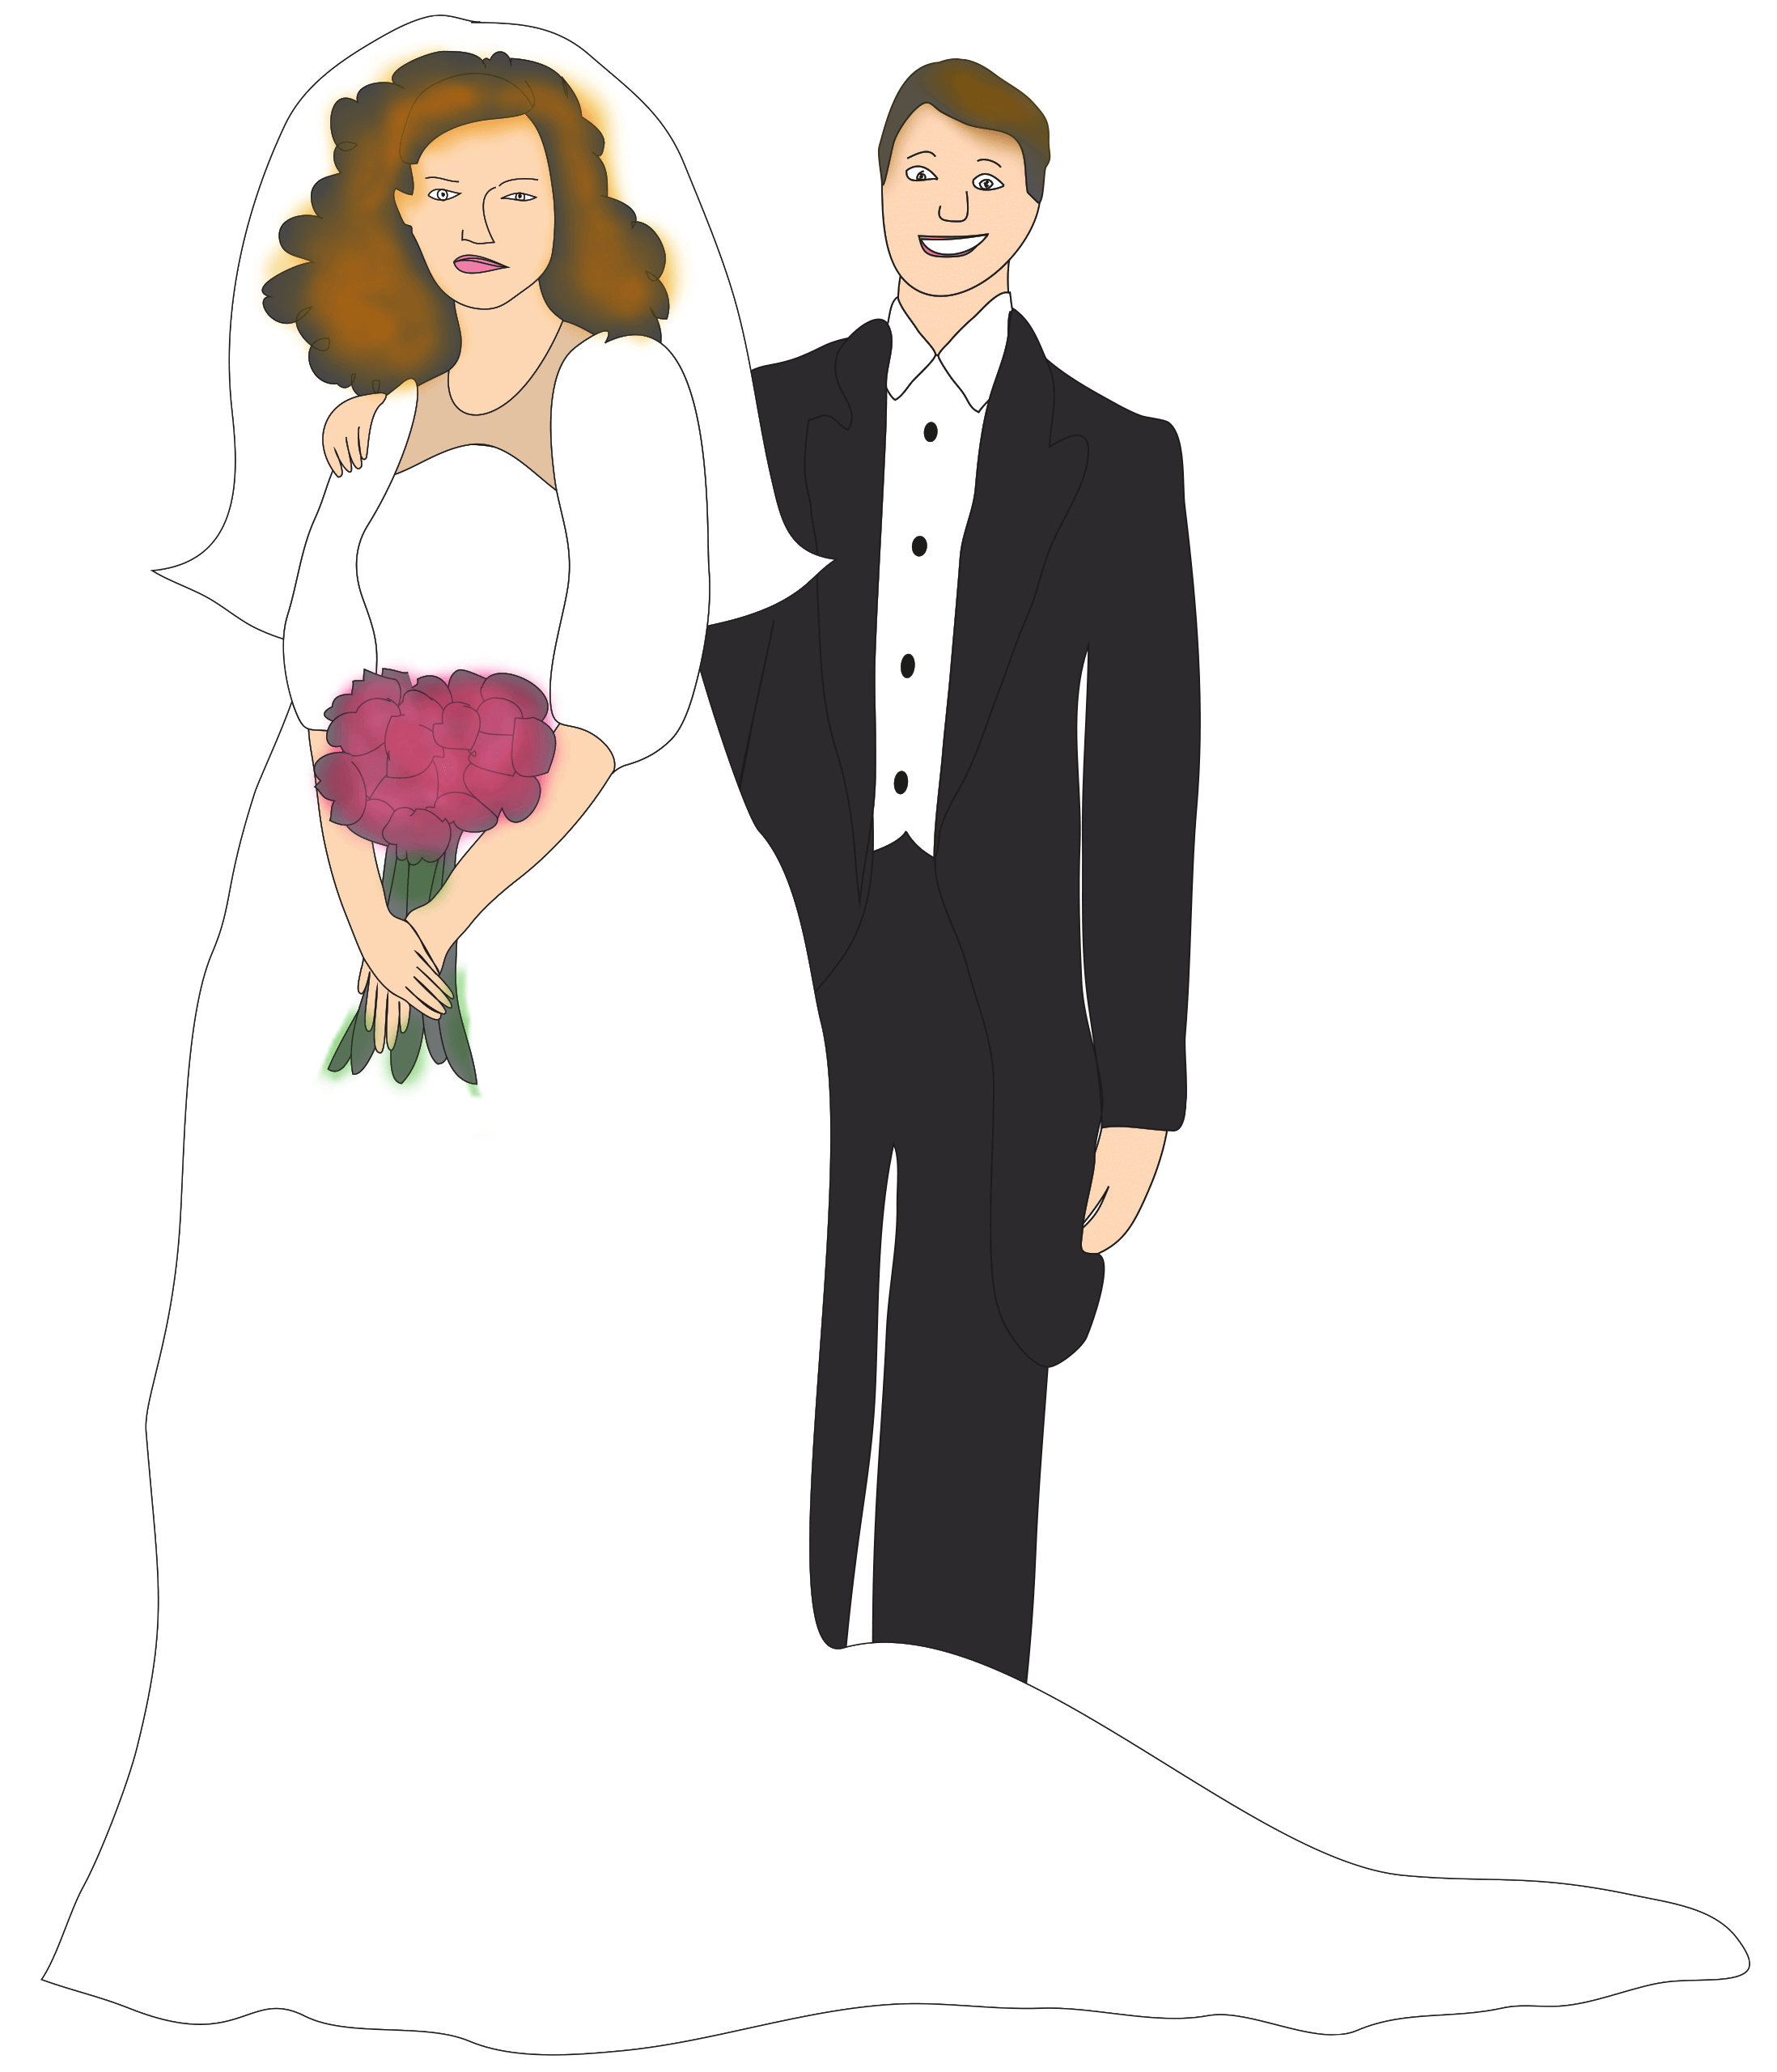 SEMPLICE_WRAPITUP_ILLUSTRATIONS_WEDDING_112817_V2